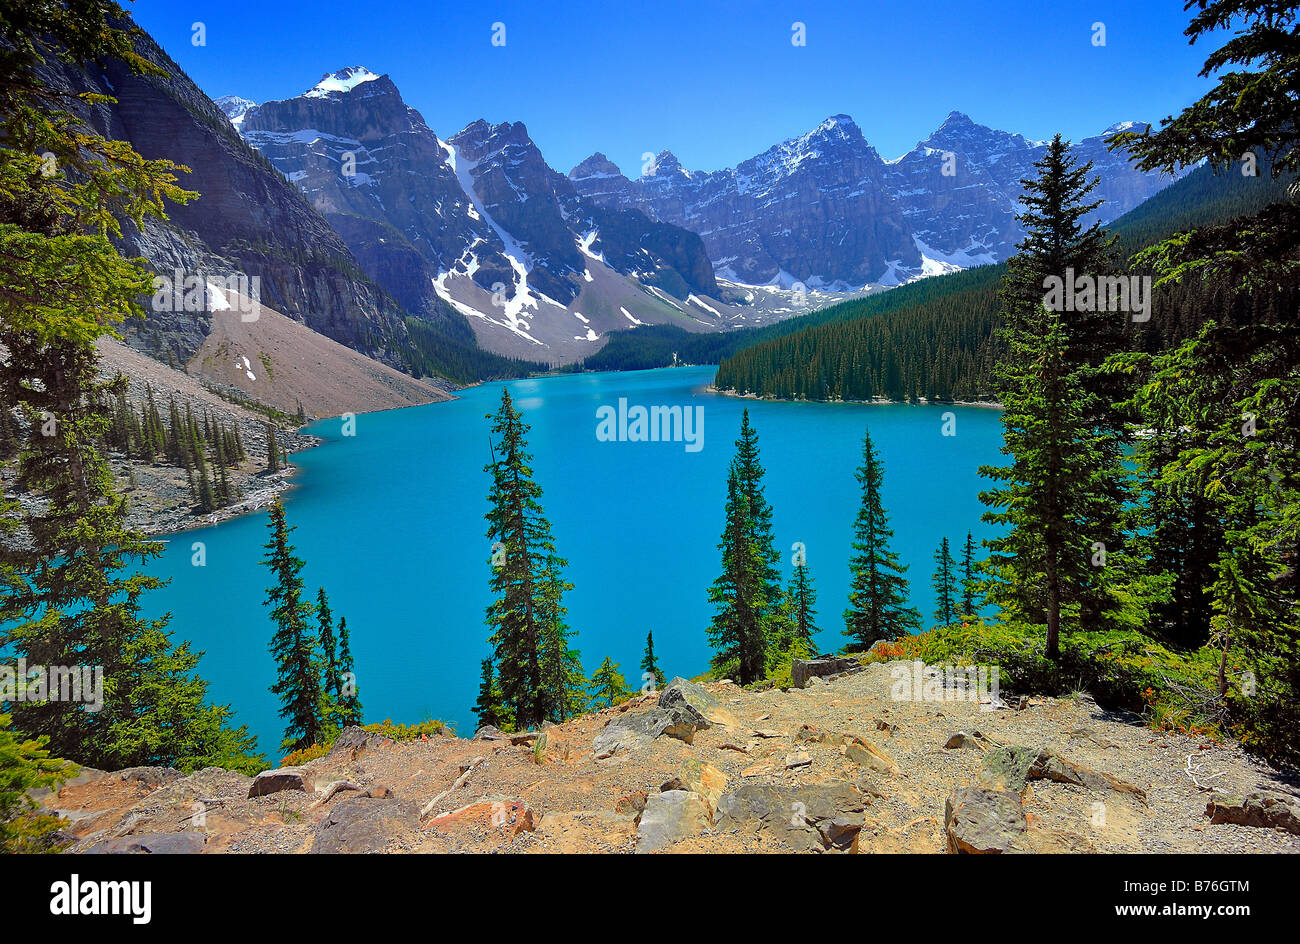 General view of Moraine Lake surrounded by mountain peaks in Banff National Park, Alberta, Canada. Horizontal Format - Stock Image